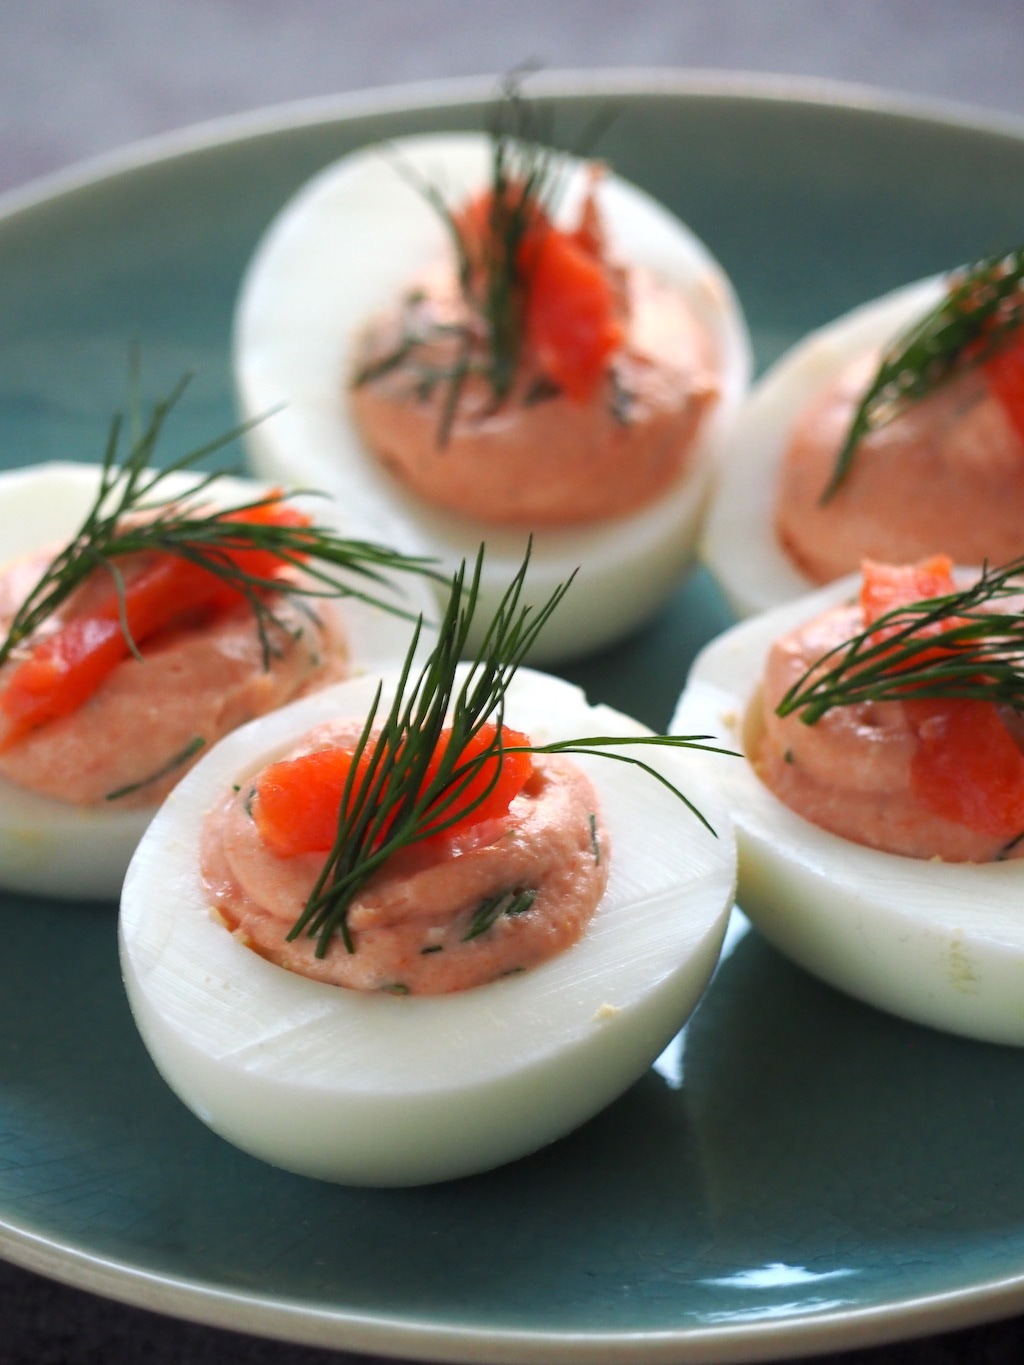 Gevulde eieren met zalm mousse close up